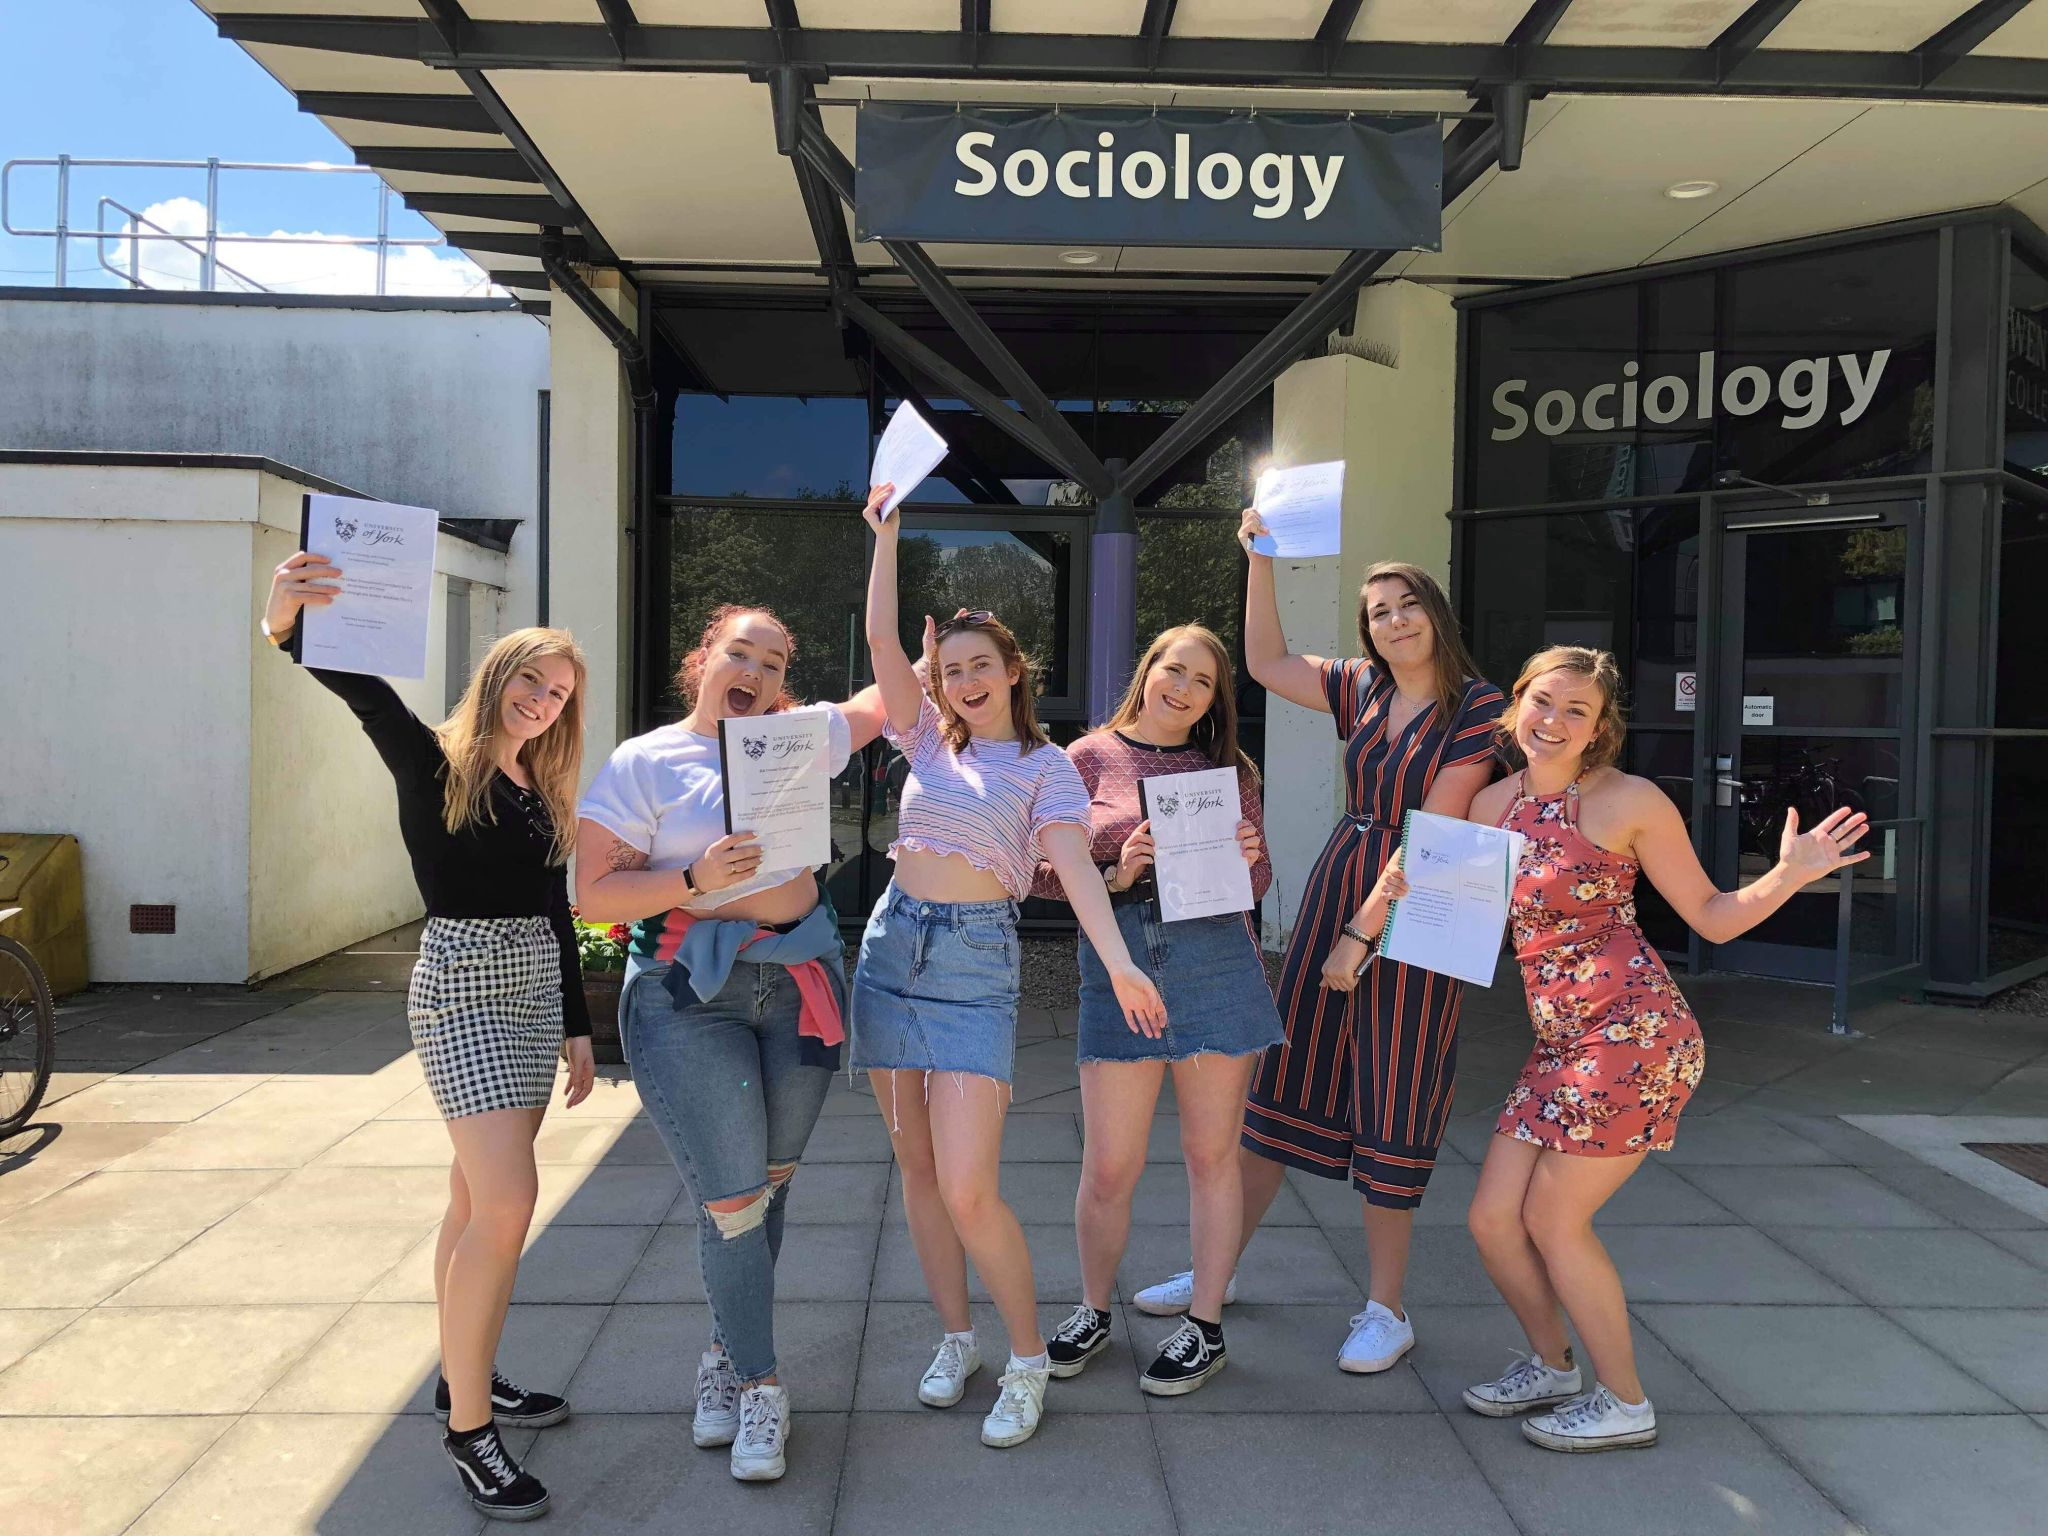 me and the girls holding our dissertations outside the department